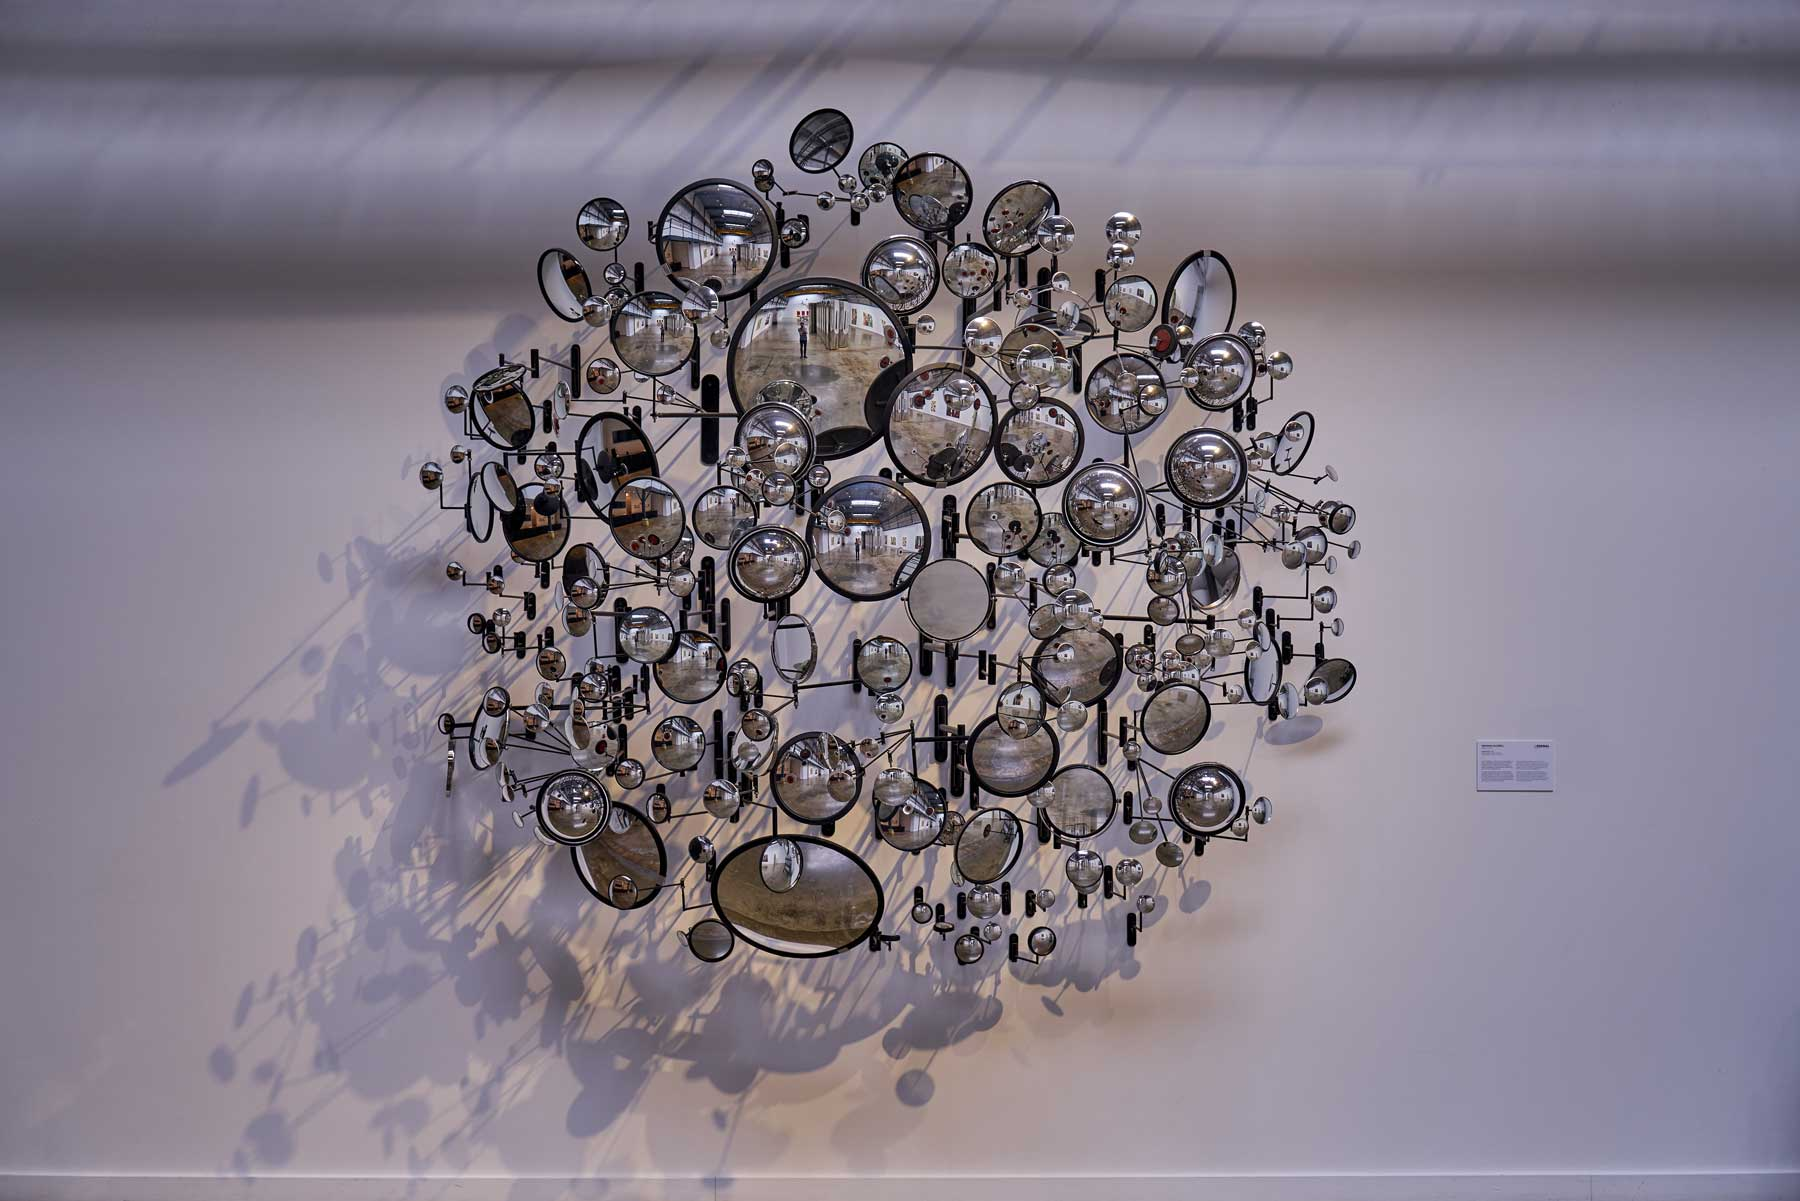 """Graham Caldwell ,  Compound Eye , 2008, Mirrors and steel hardware, 92"""" x 98"""" x 50"""" (234 x 249 x 127 cm)"""